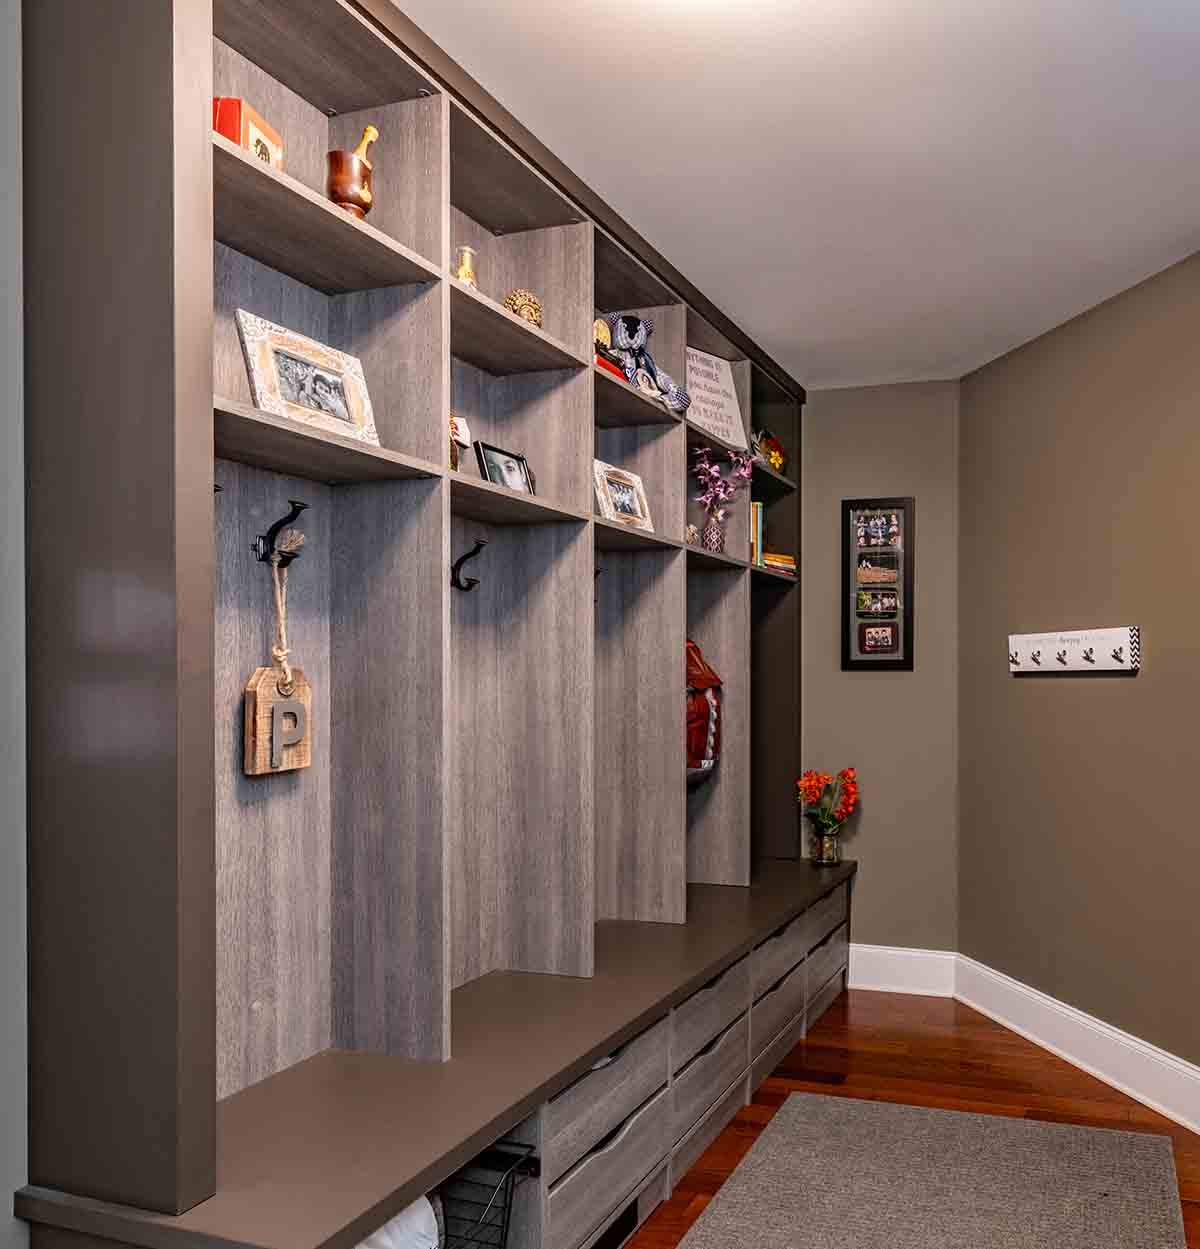 Mudroom with cubbies and underneath storage compartments